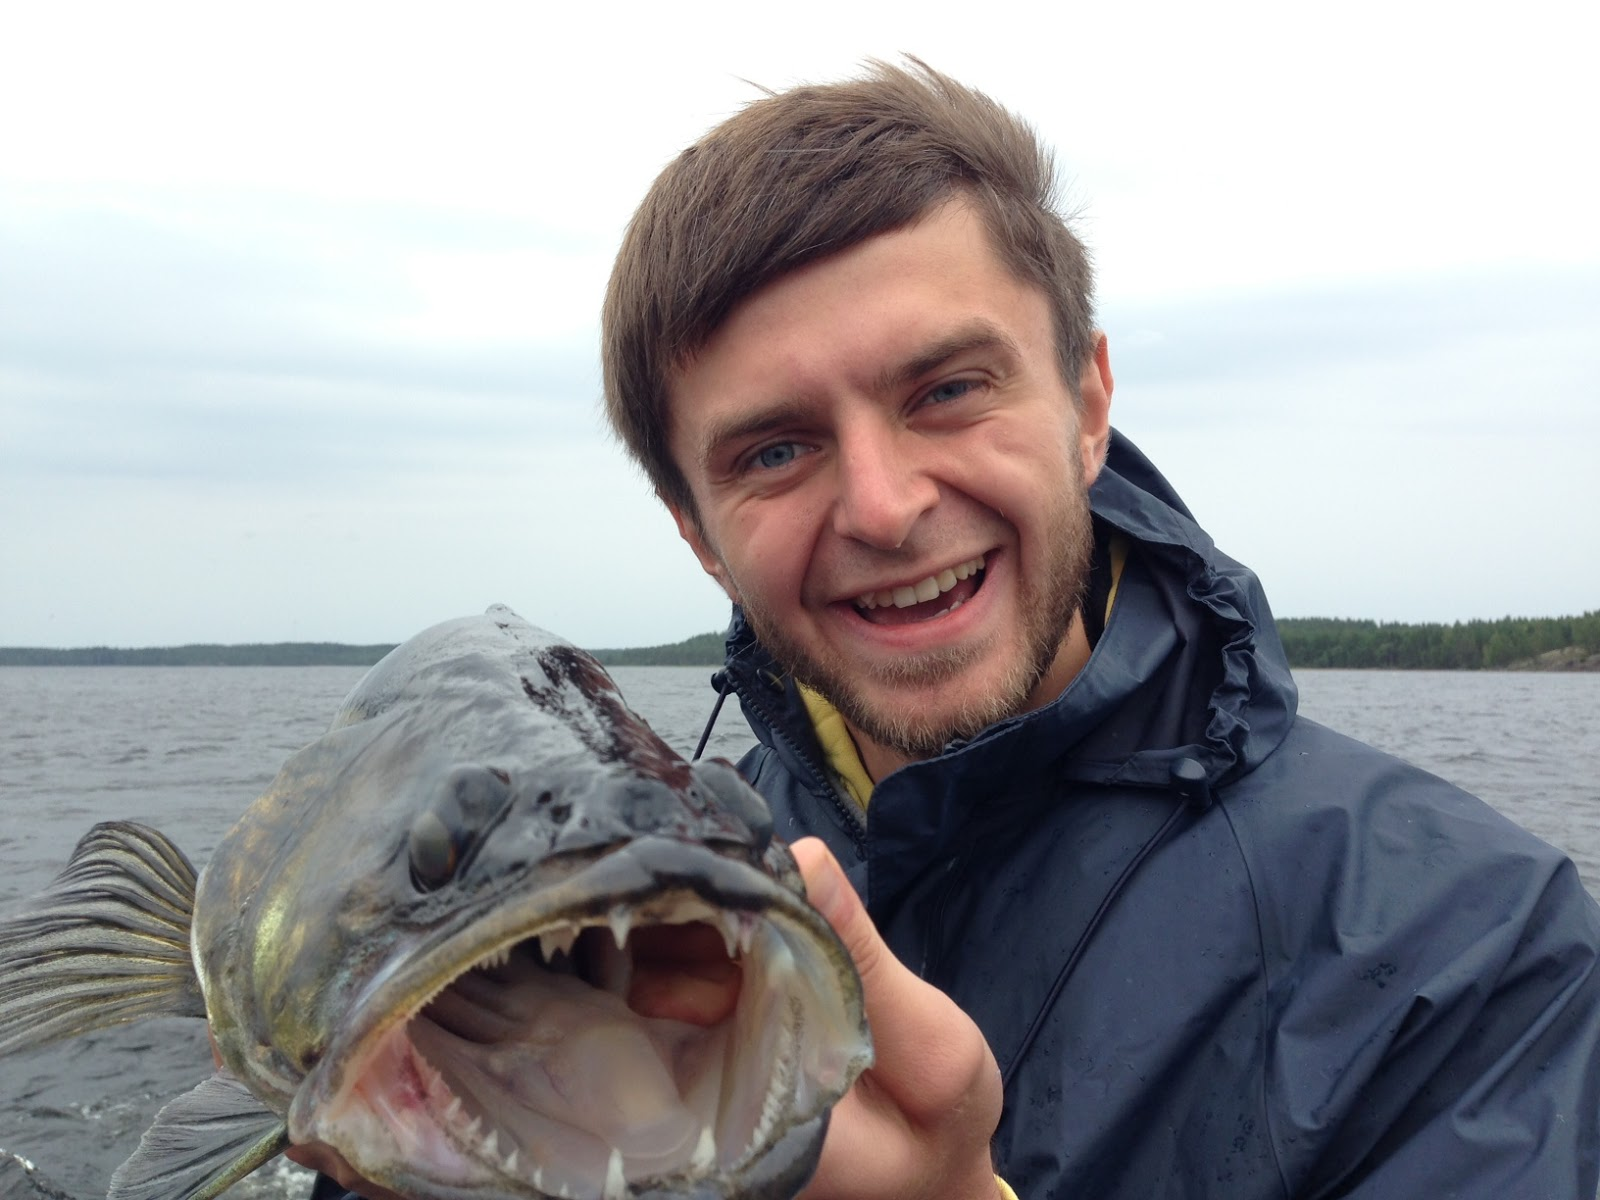 Lake saimaa fishing travels great fishing weekend in for Fishing in finland